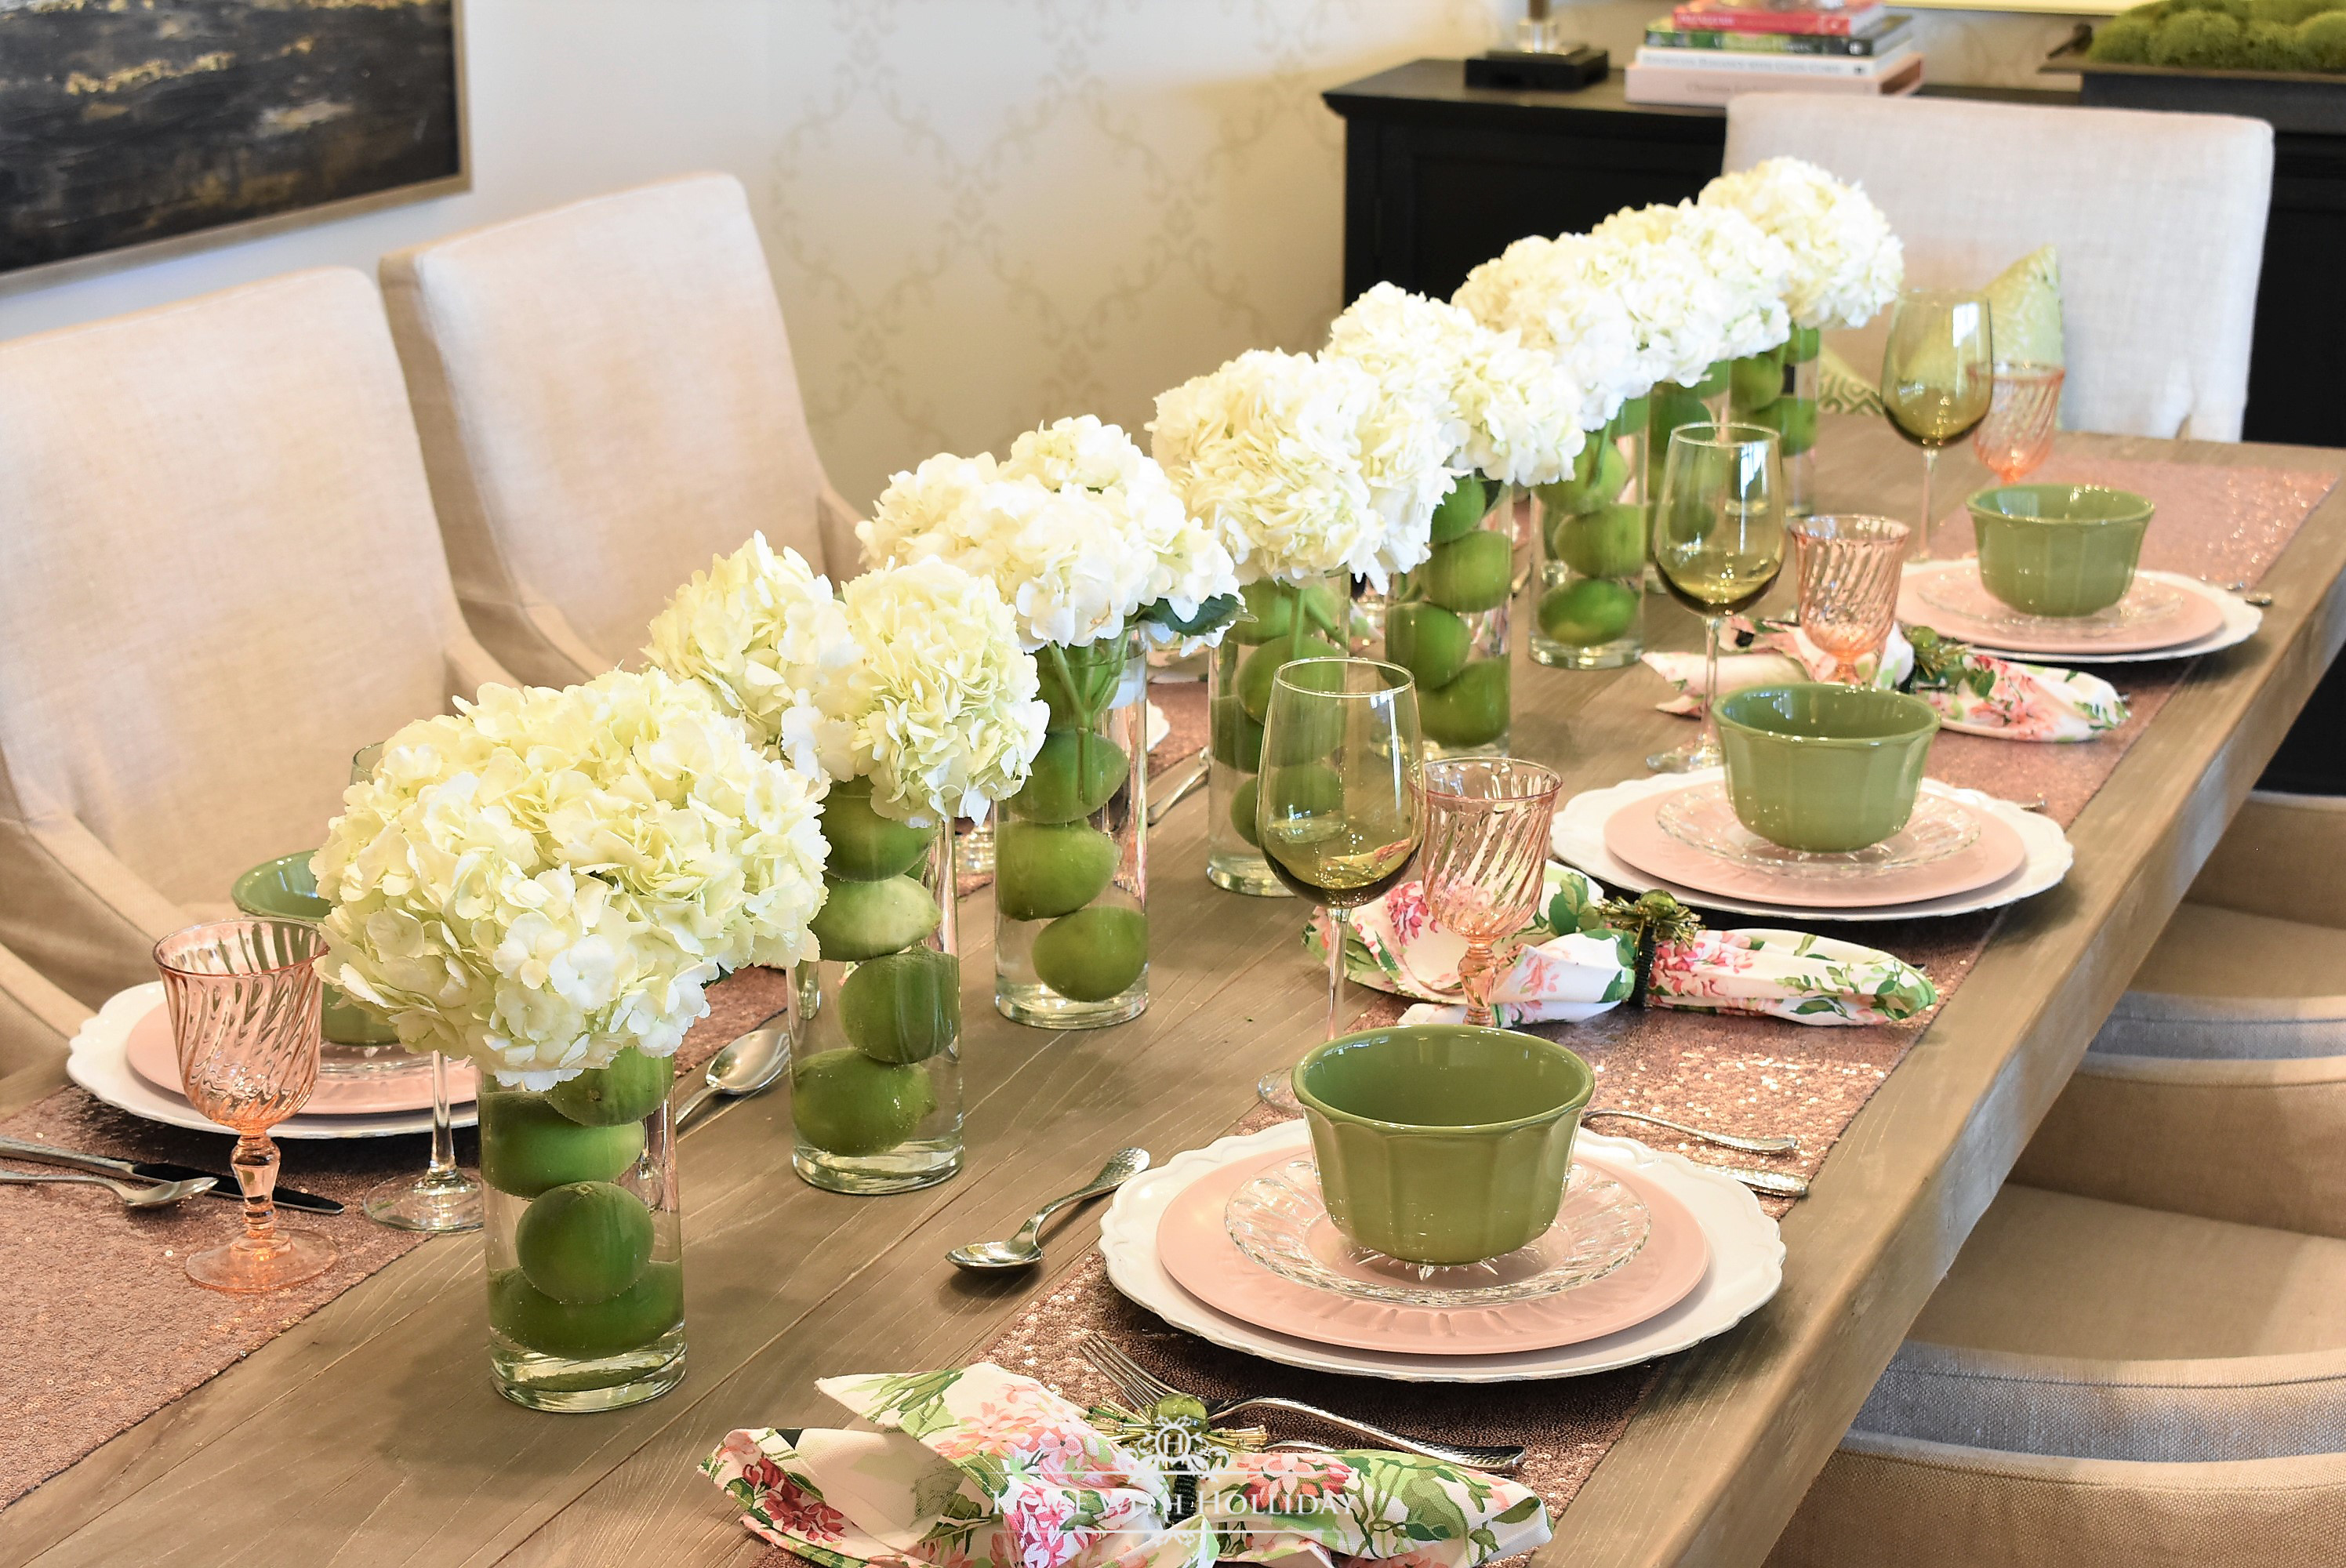 Spring Table Setting For Mother S Day Luncheon Home With Holliday